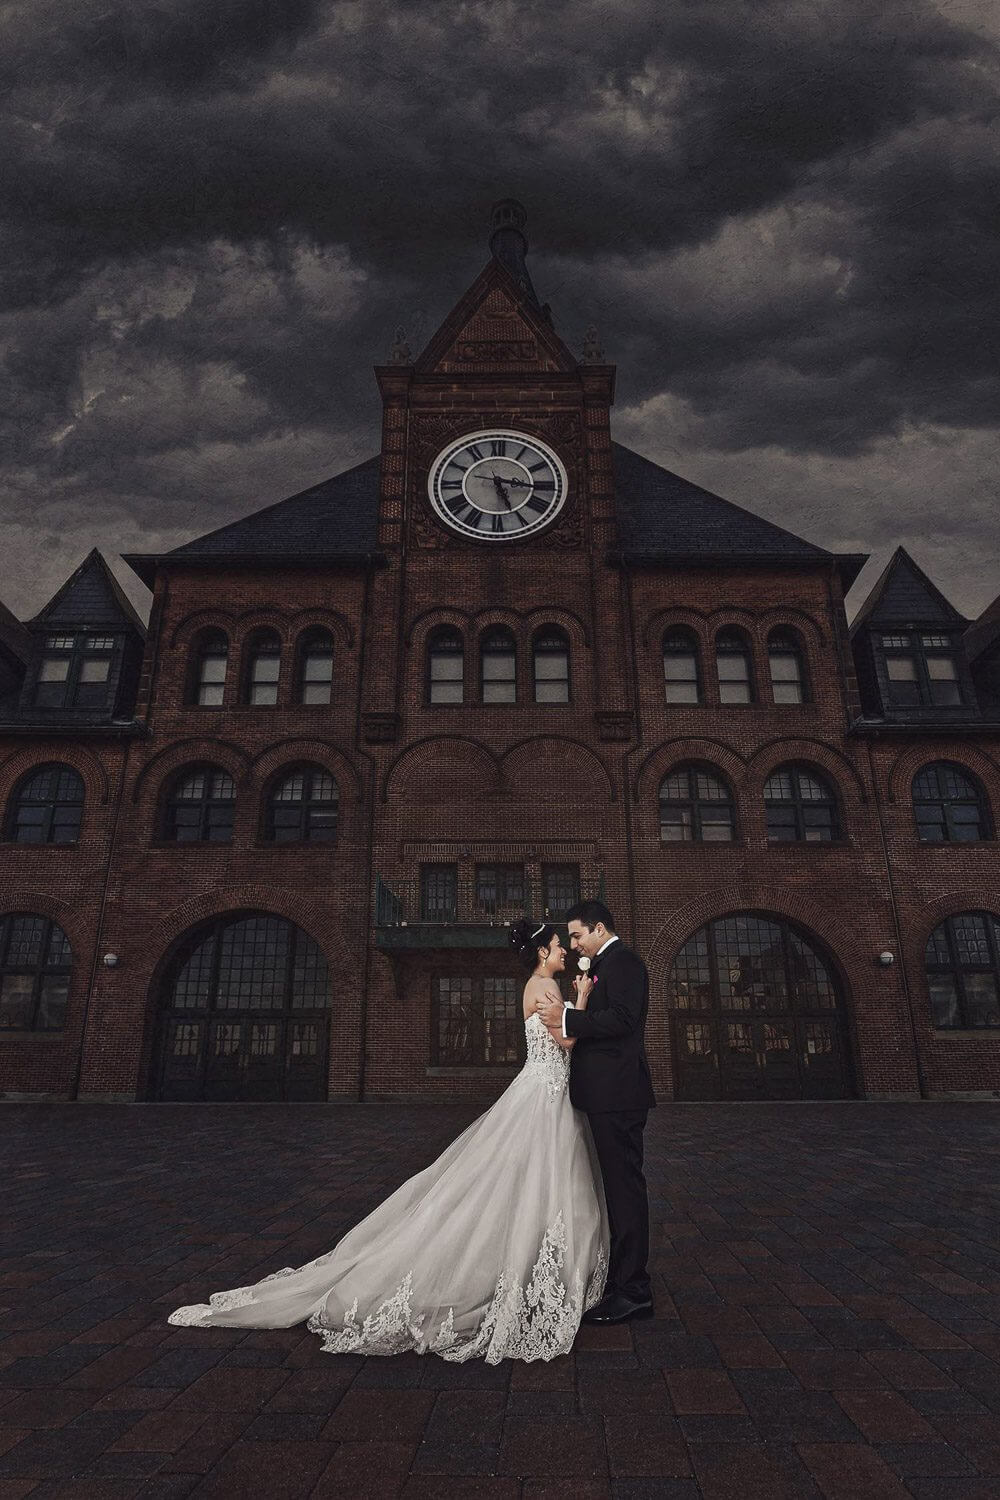 New Jersey wedding Photo of bride and groom in front of the of a historic building at Liberty State Park New Jersey Wedding Photographer